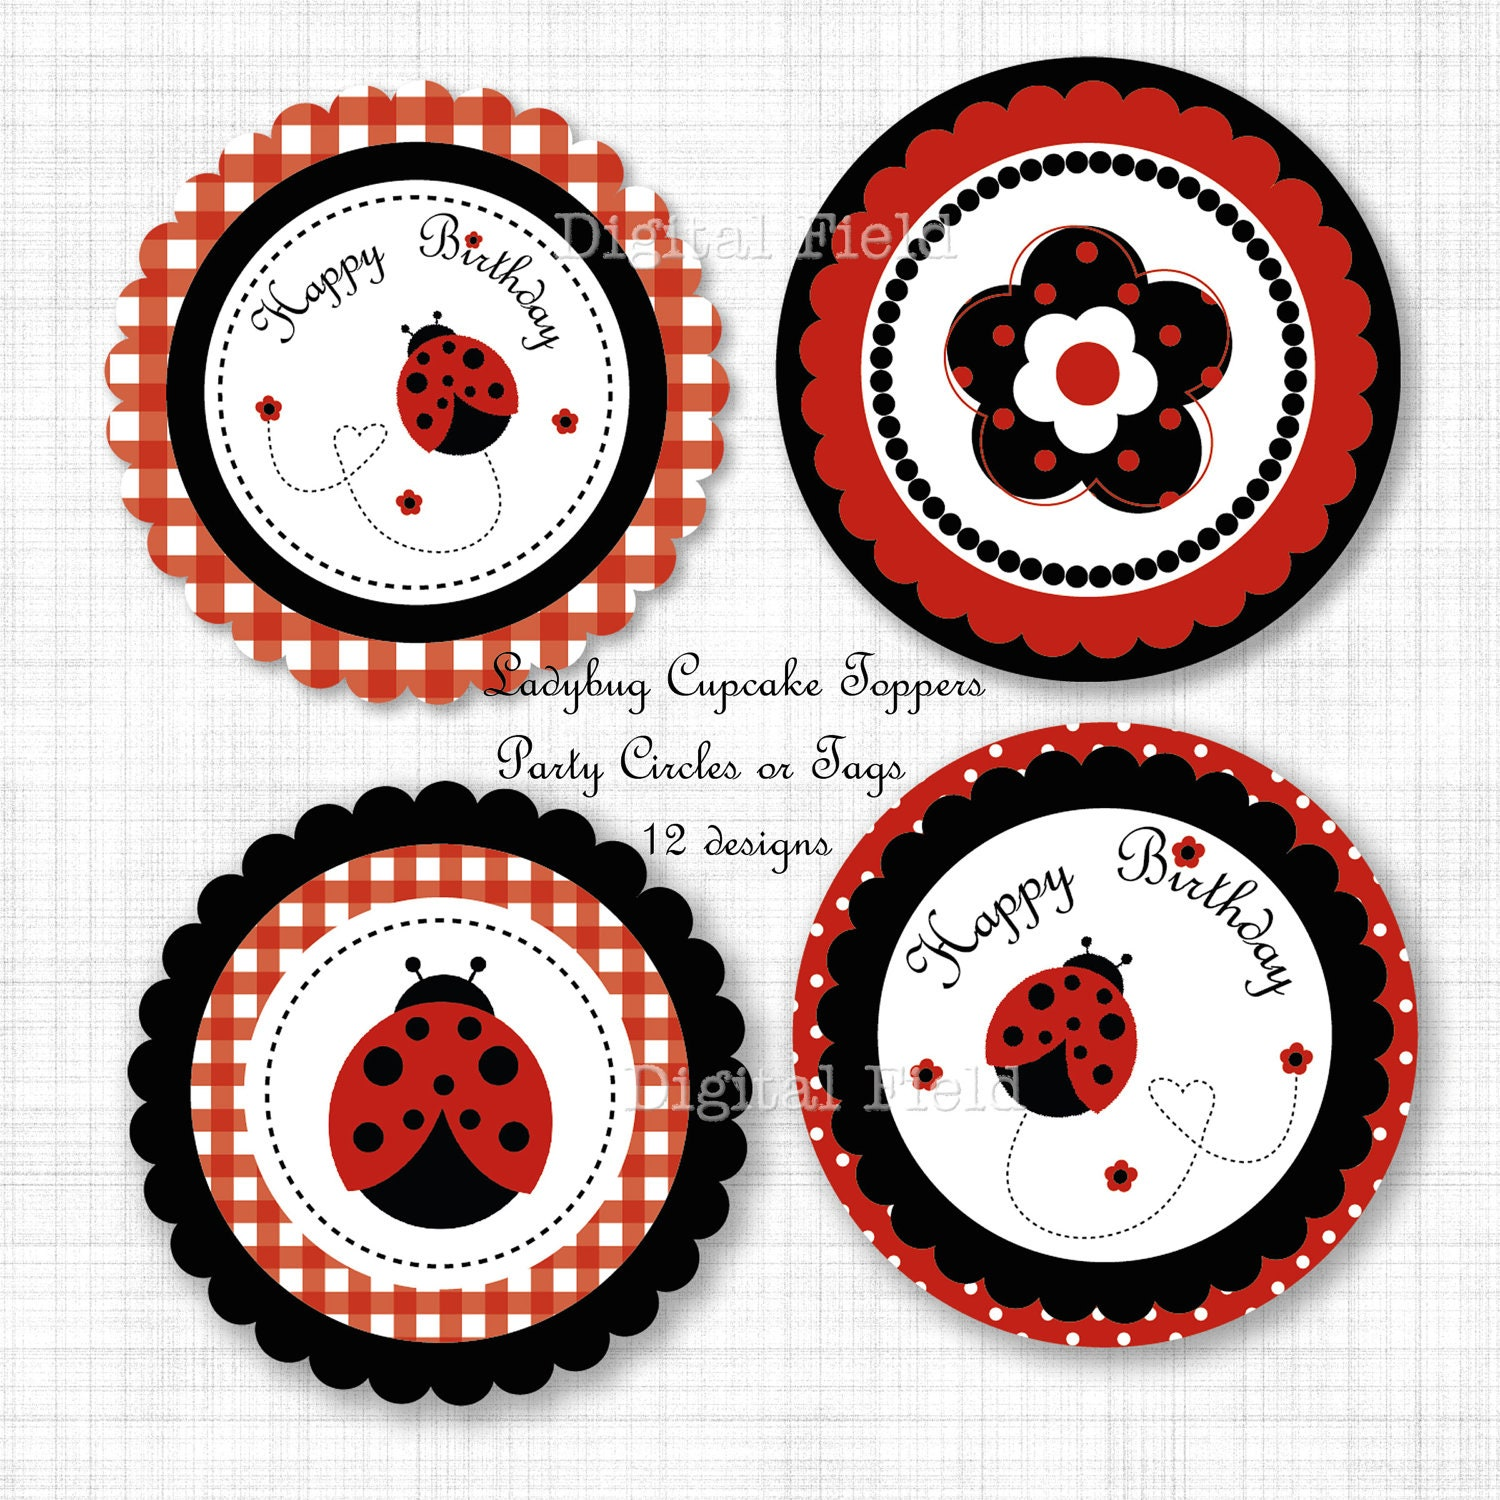 Ladybug Cupcake Toppers Or Party Circles DIY By Digitalfield